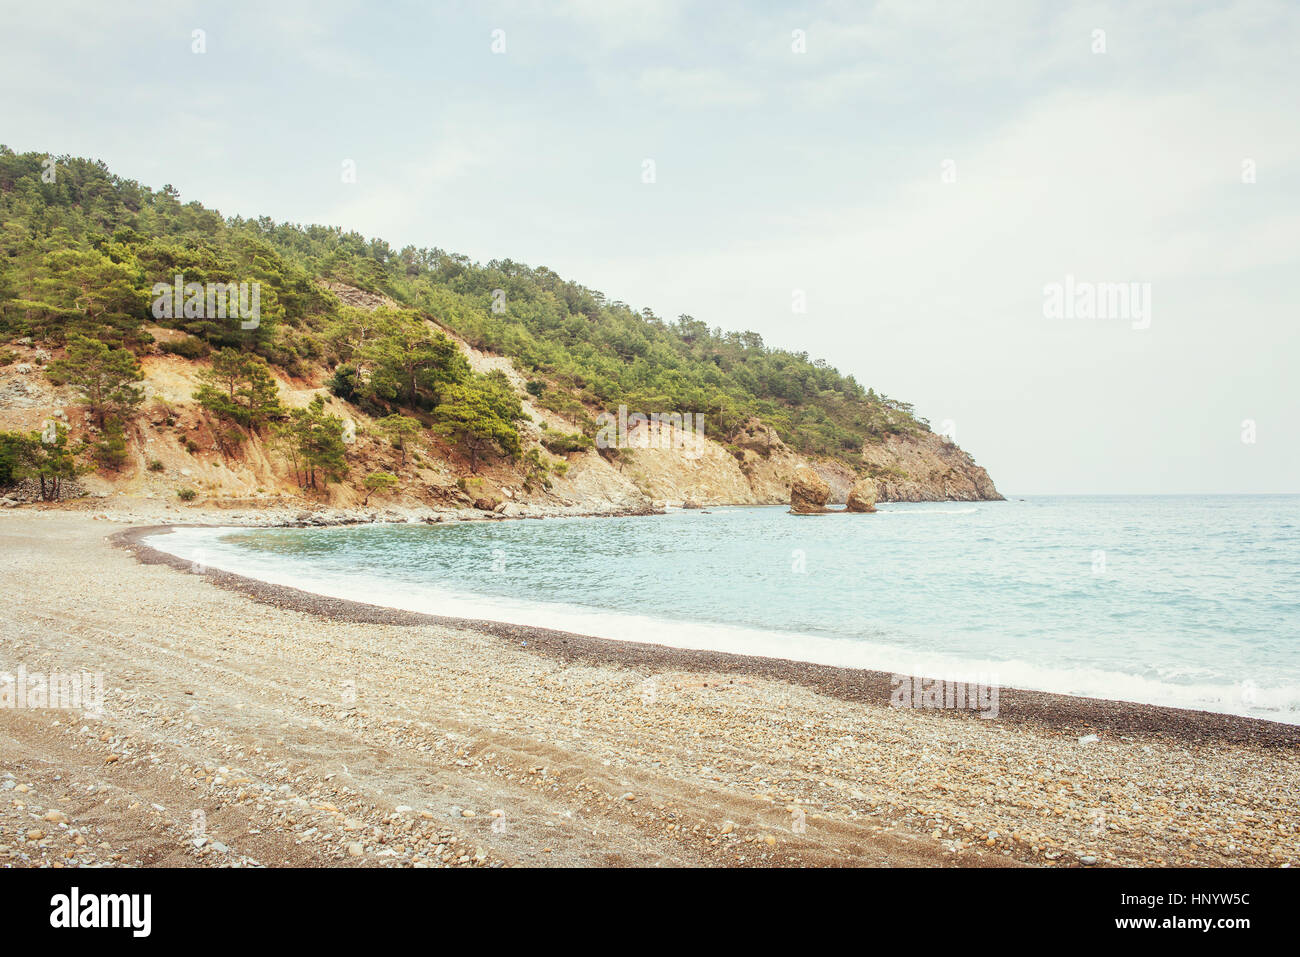 Panoramic view on sea coast near Antalya, Turkey - Stock Image